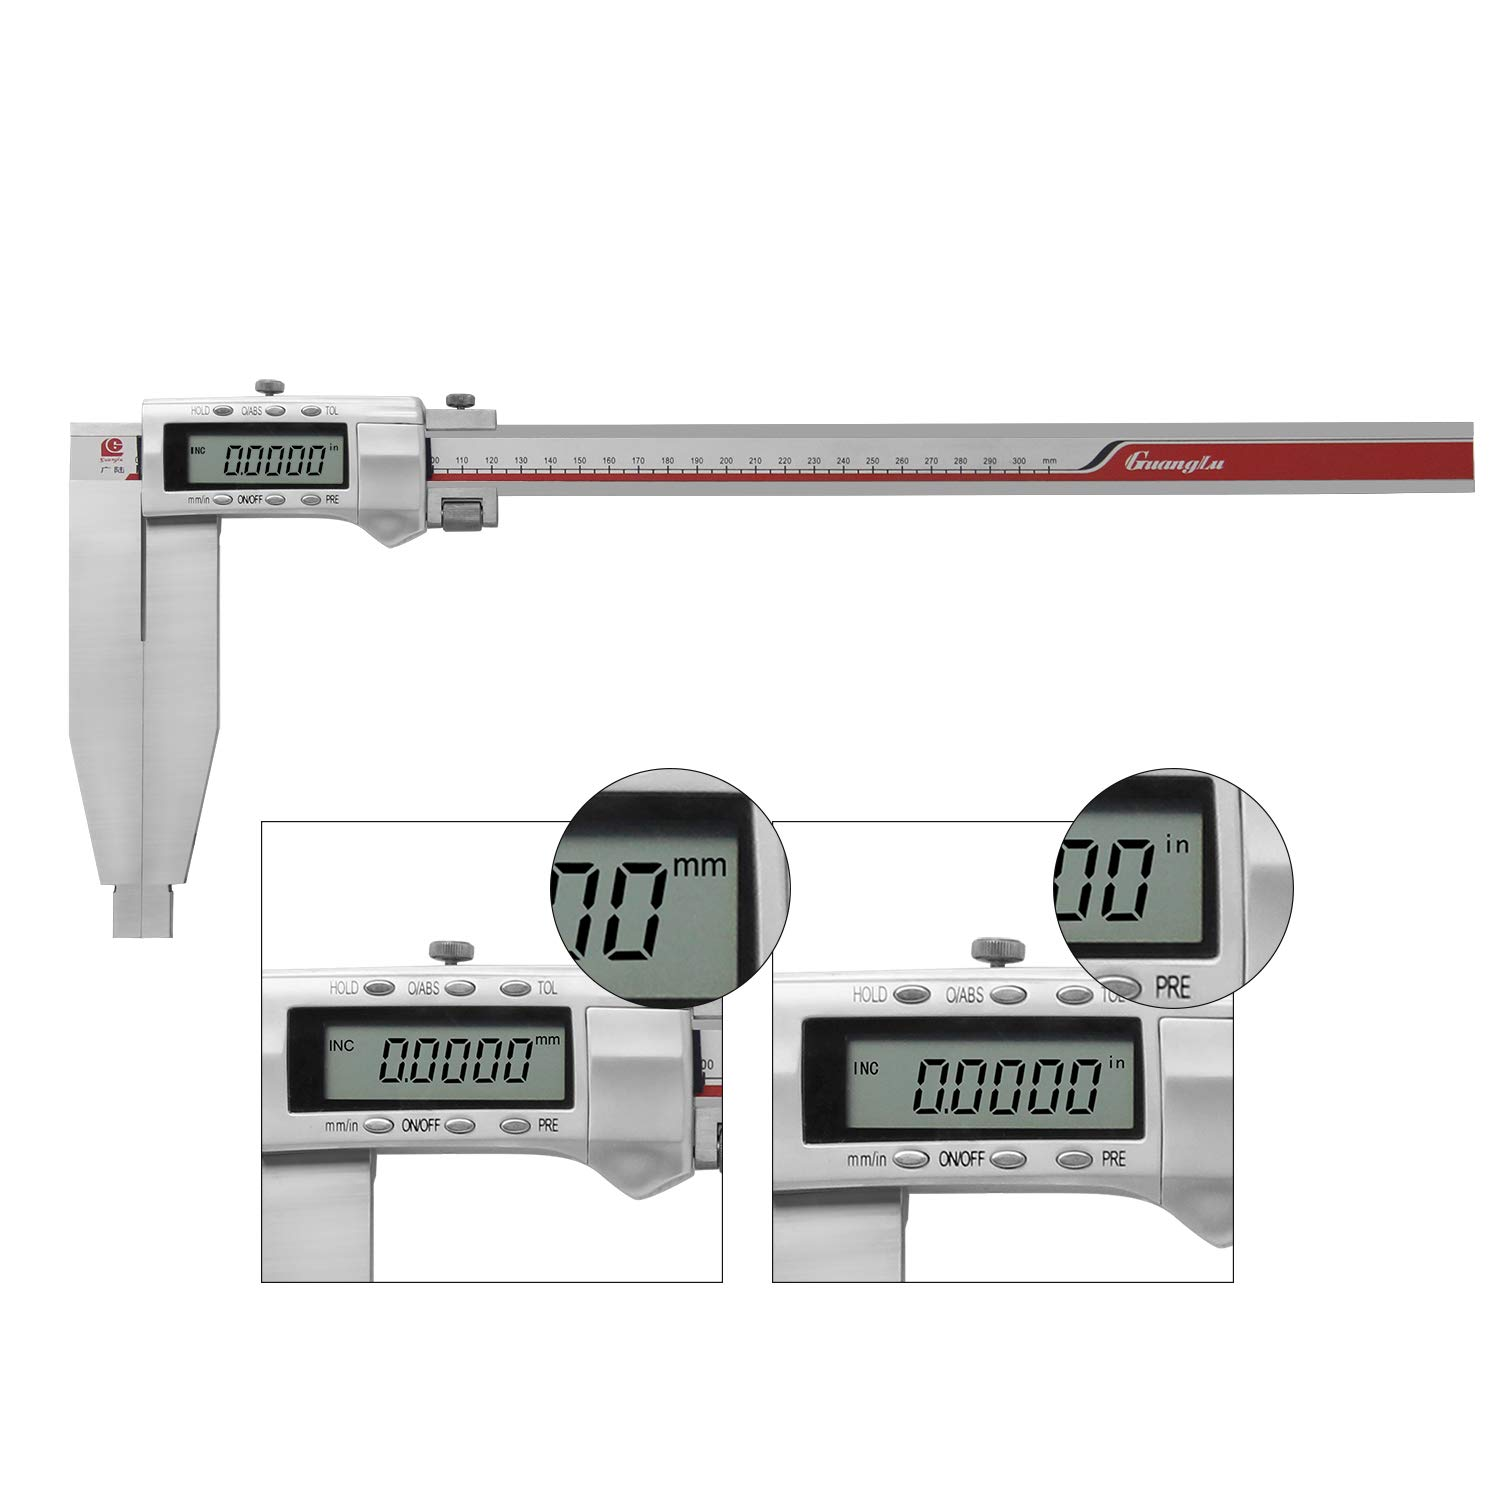 BAOSHISHAN 0-300mm//11.8 Inch Digital Caliper Vernier Caliper Stainless Steel with Long Jaw 150mm//6 Inch Measuring Tool Accuracy:0.01mm Unit mm//in